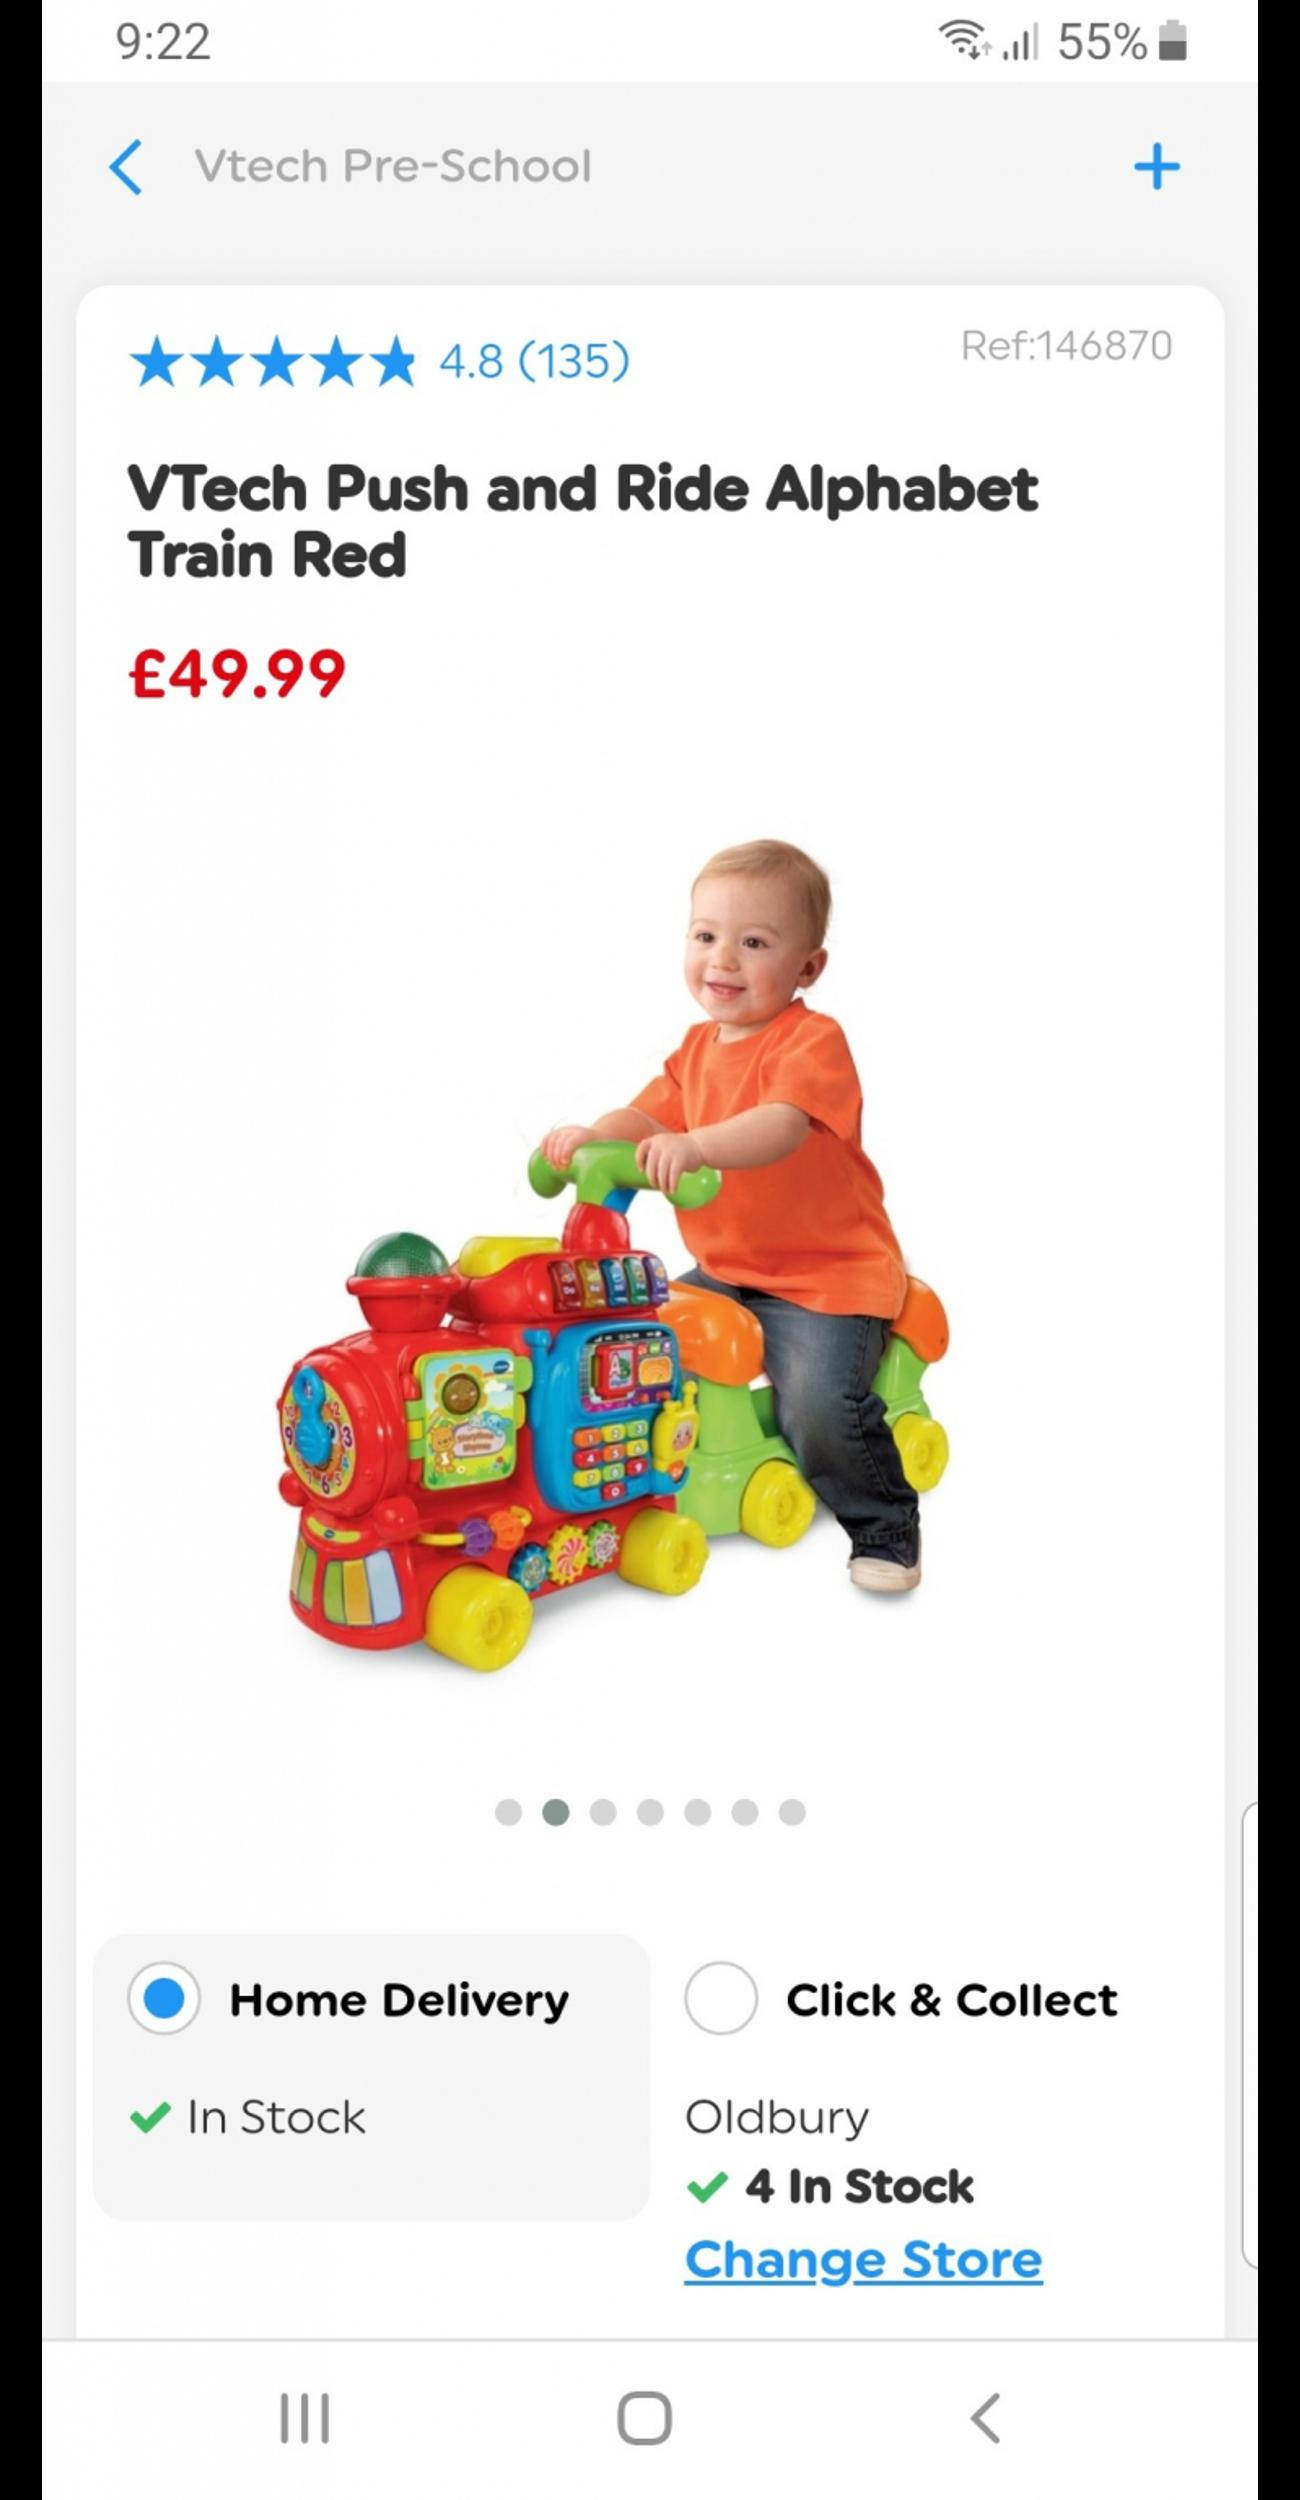 push and play train in excellent condition. plenty to play and learn with.